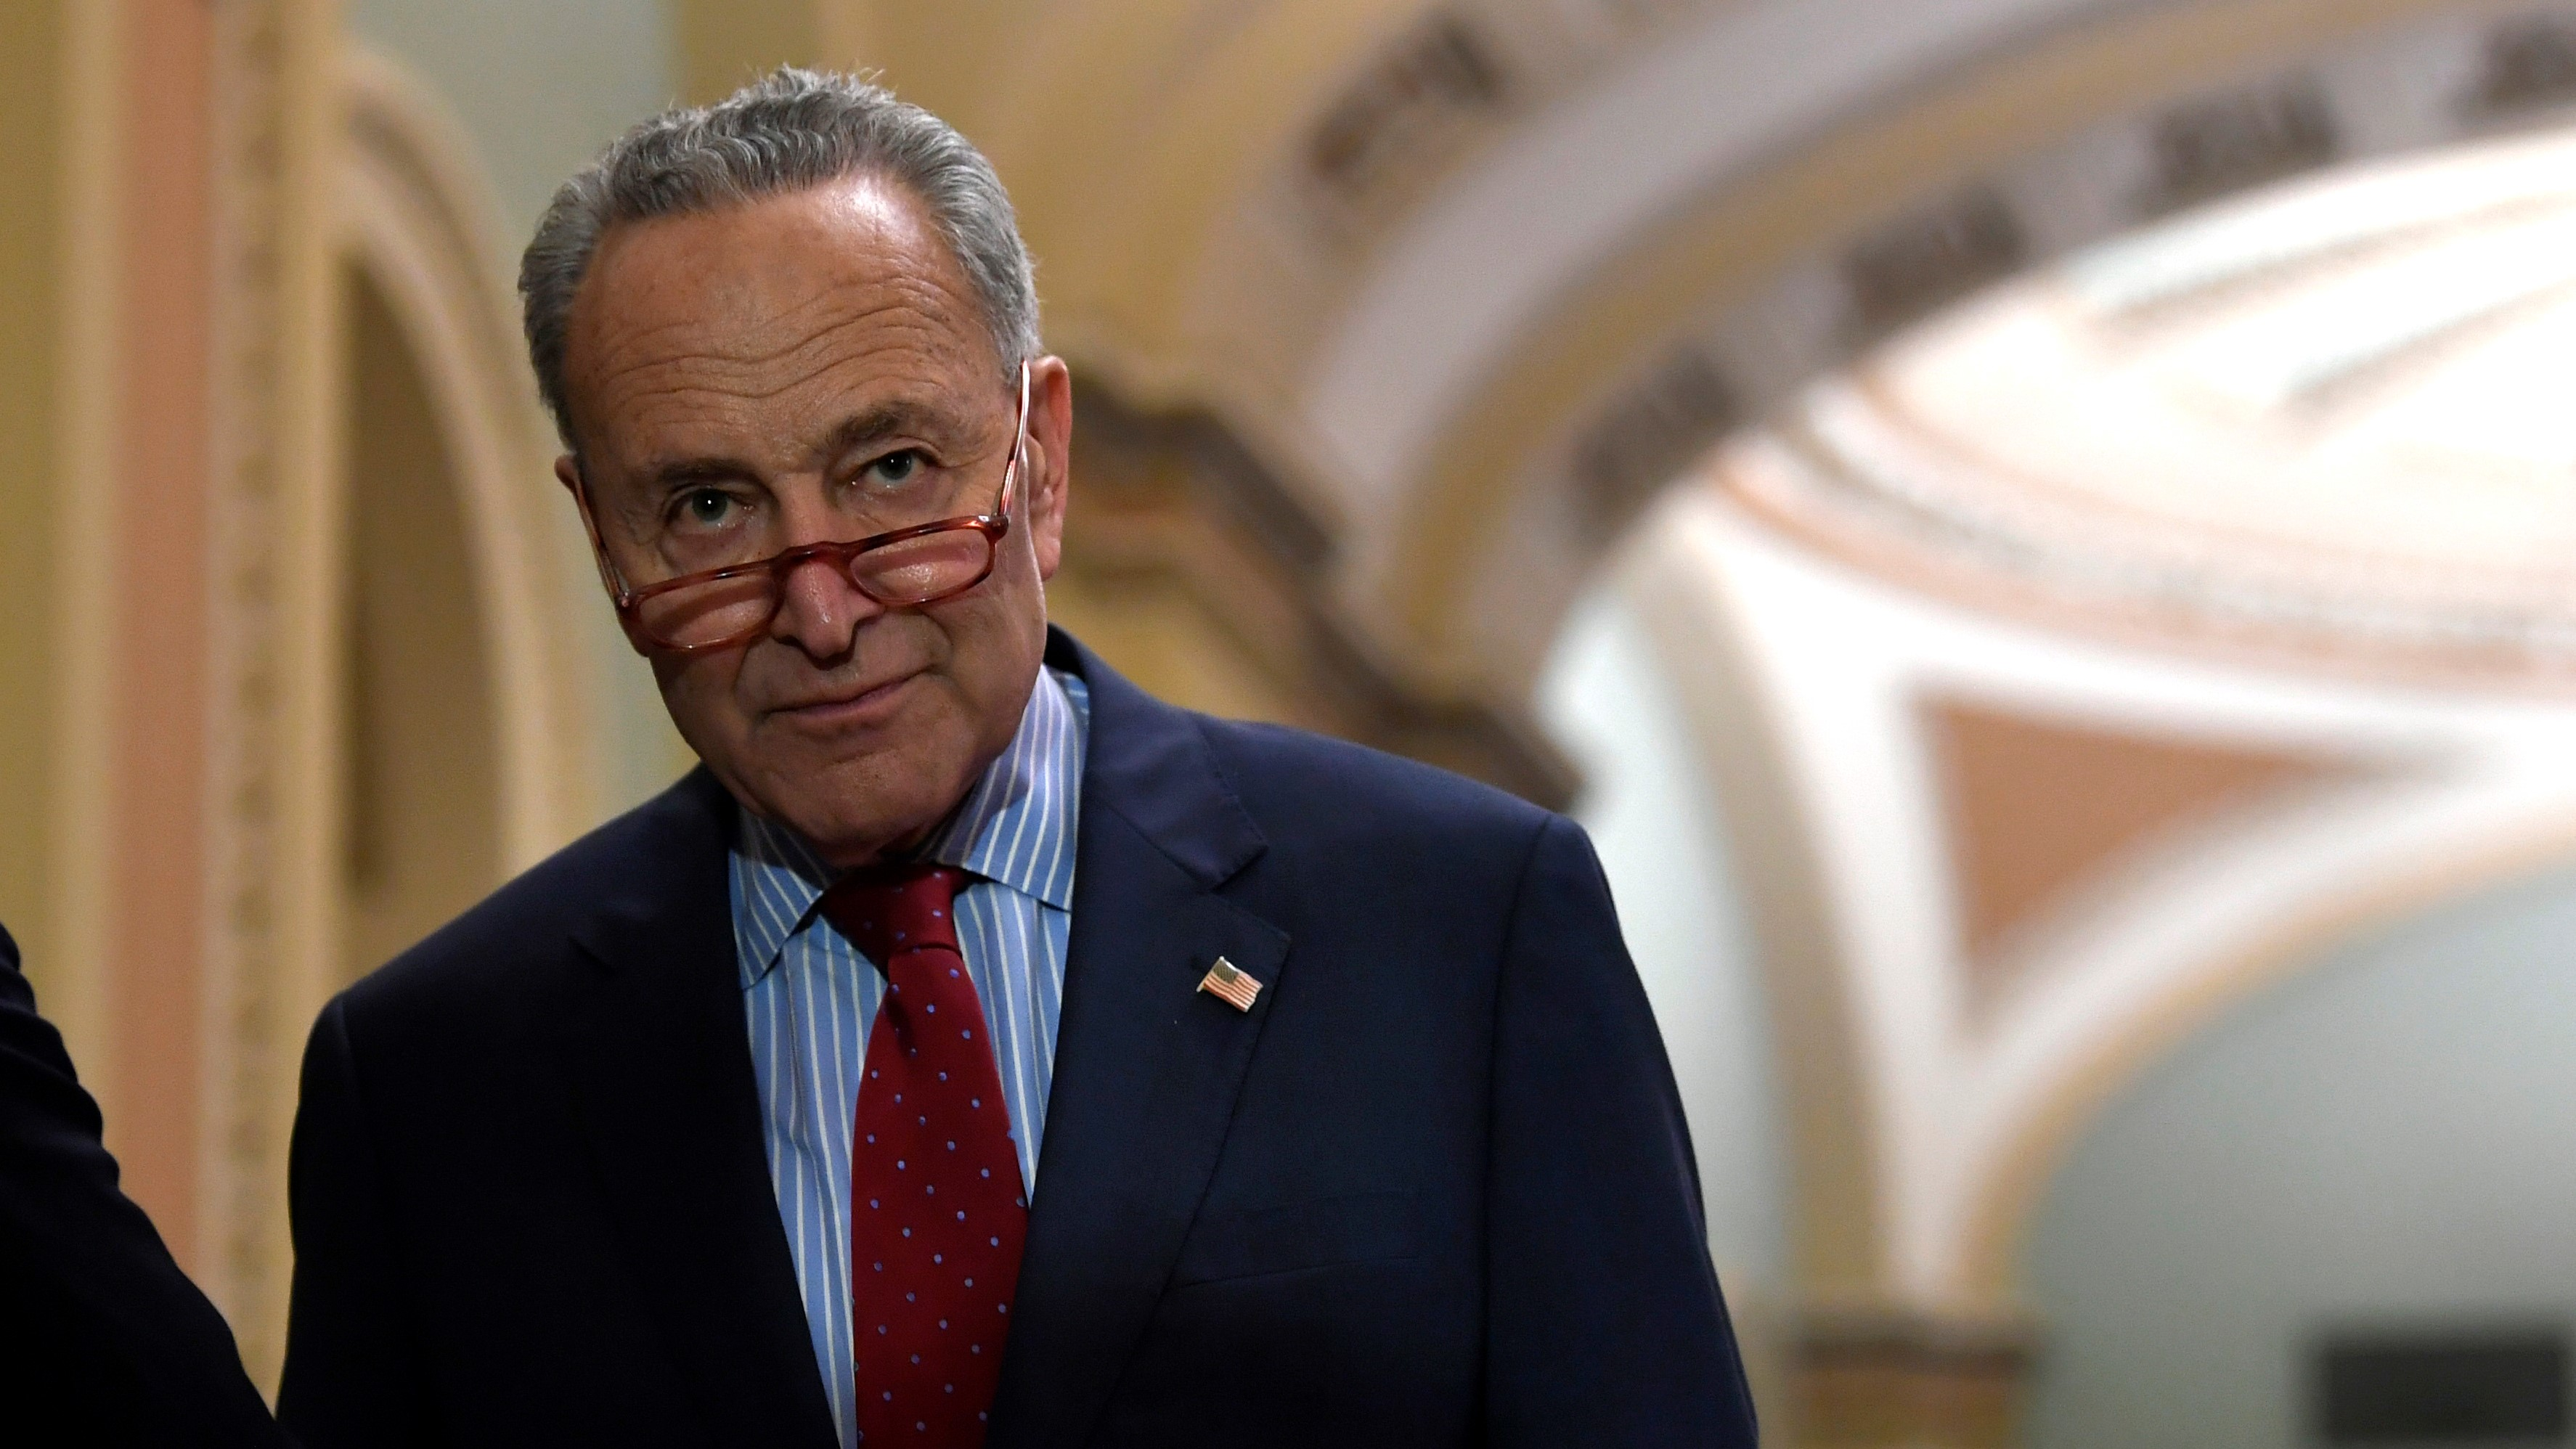 Schumer Calls for End to Import of 'Dangerous' Bargain Goods